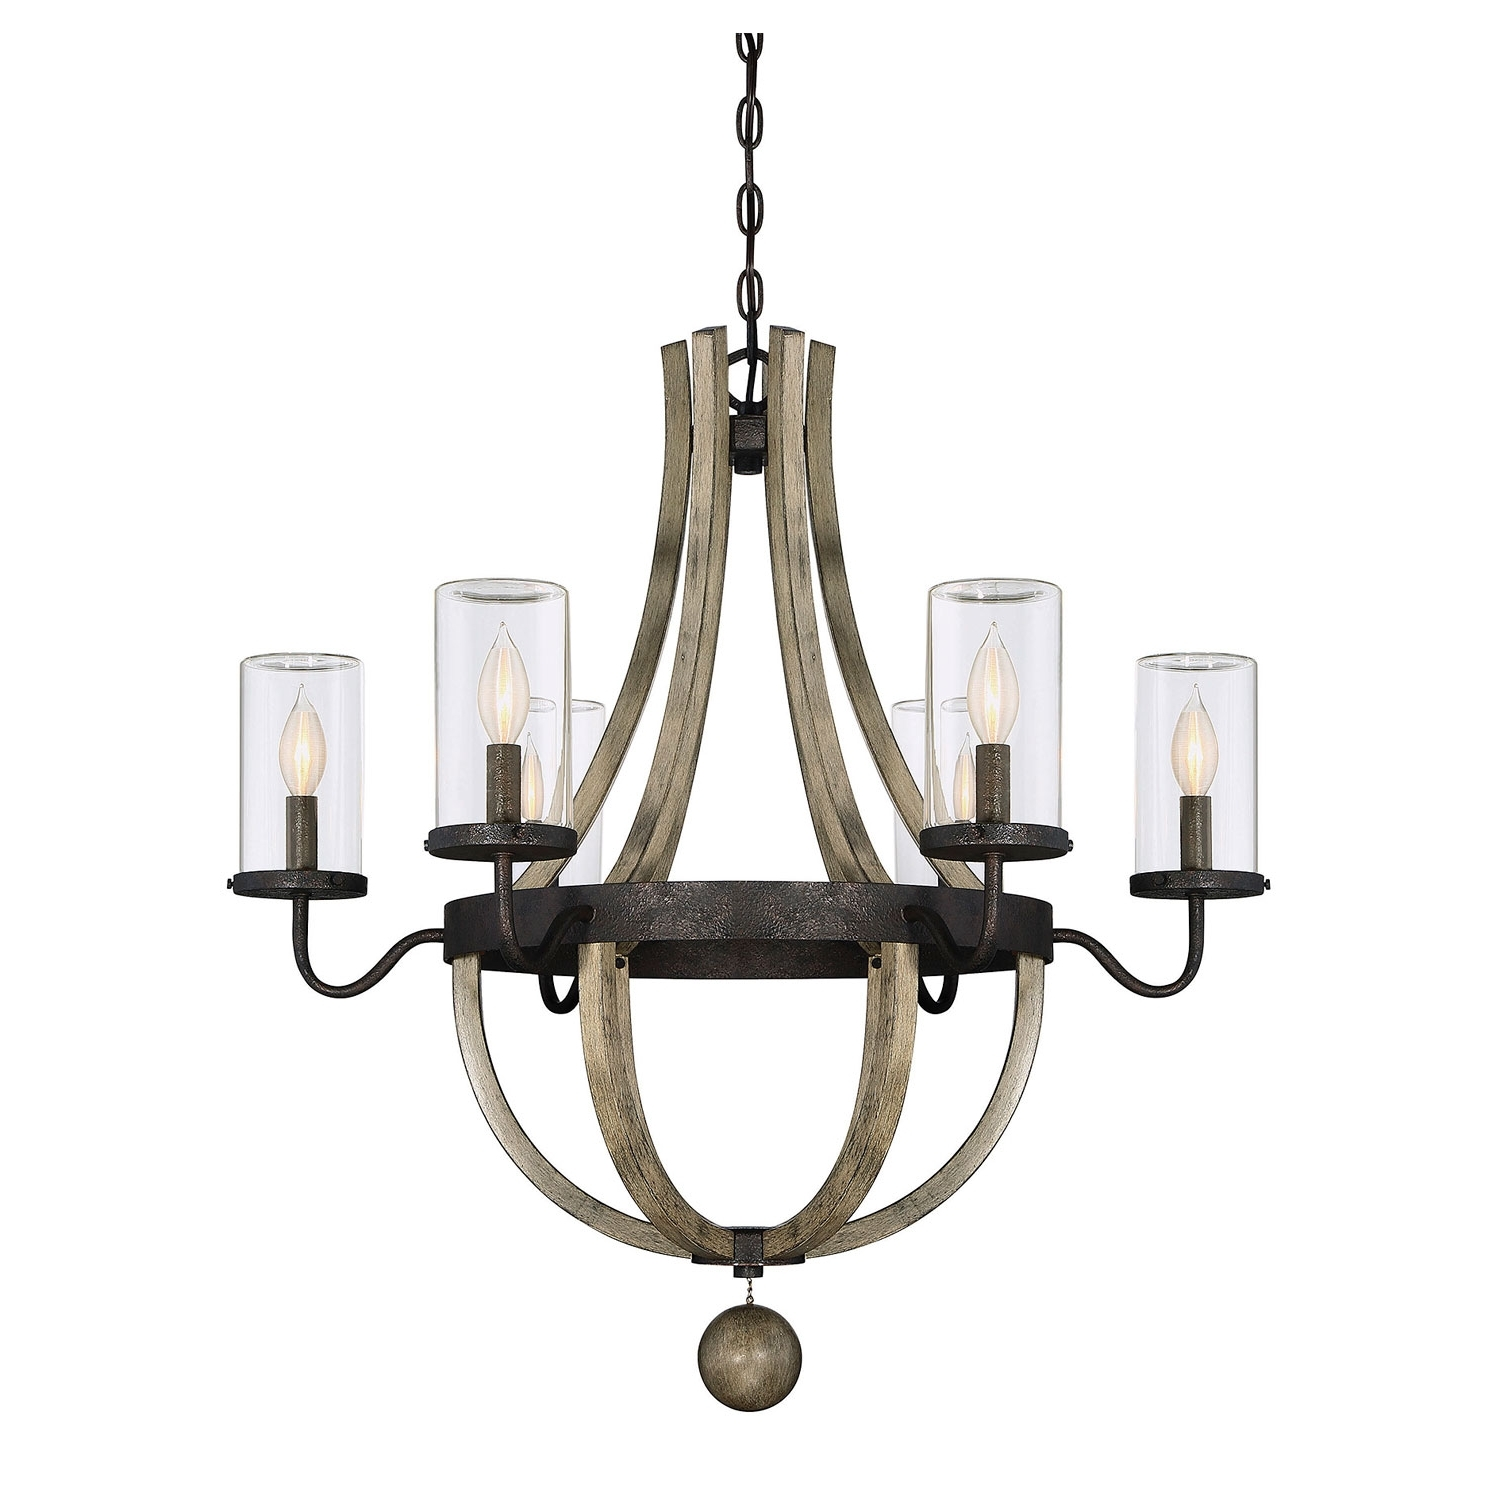 Big Outdoor Hanging Lights Throughout Current Outdoor Hanging Lights On Sale (View 4 of 20)